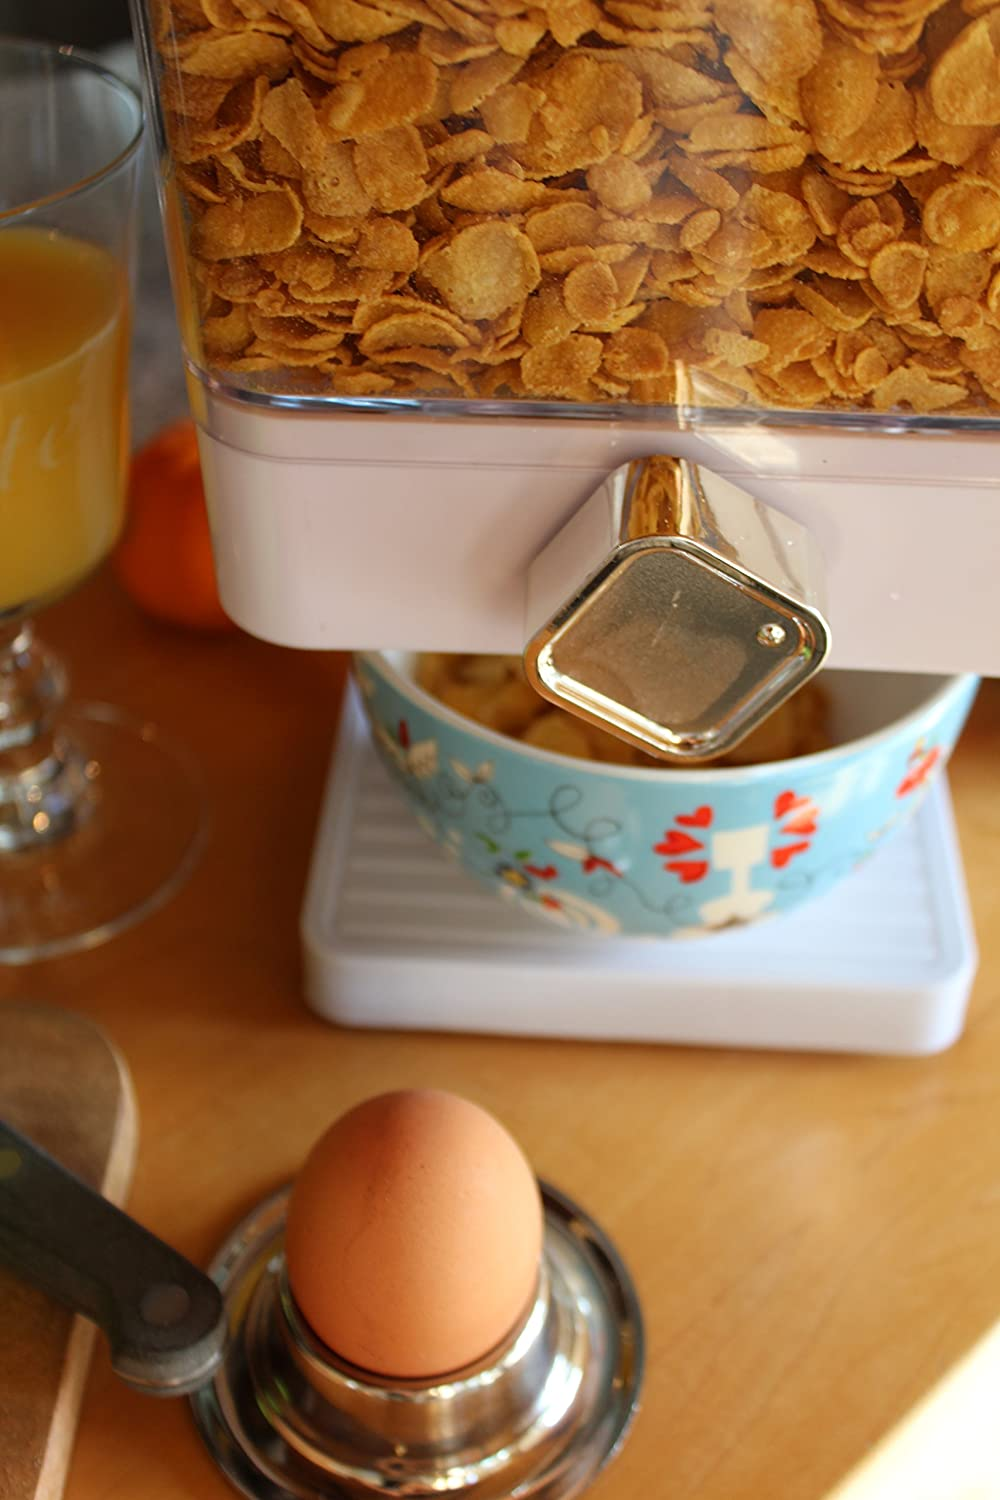 Elemento de Desayuno Dispensador de Copos de Ma/íz United Entertainment Cornflakes Dispenser blanco